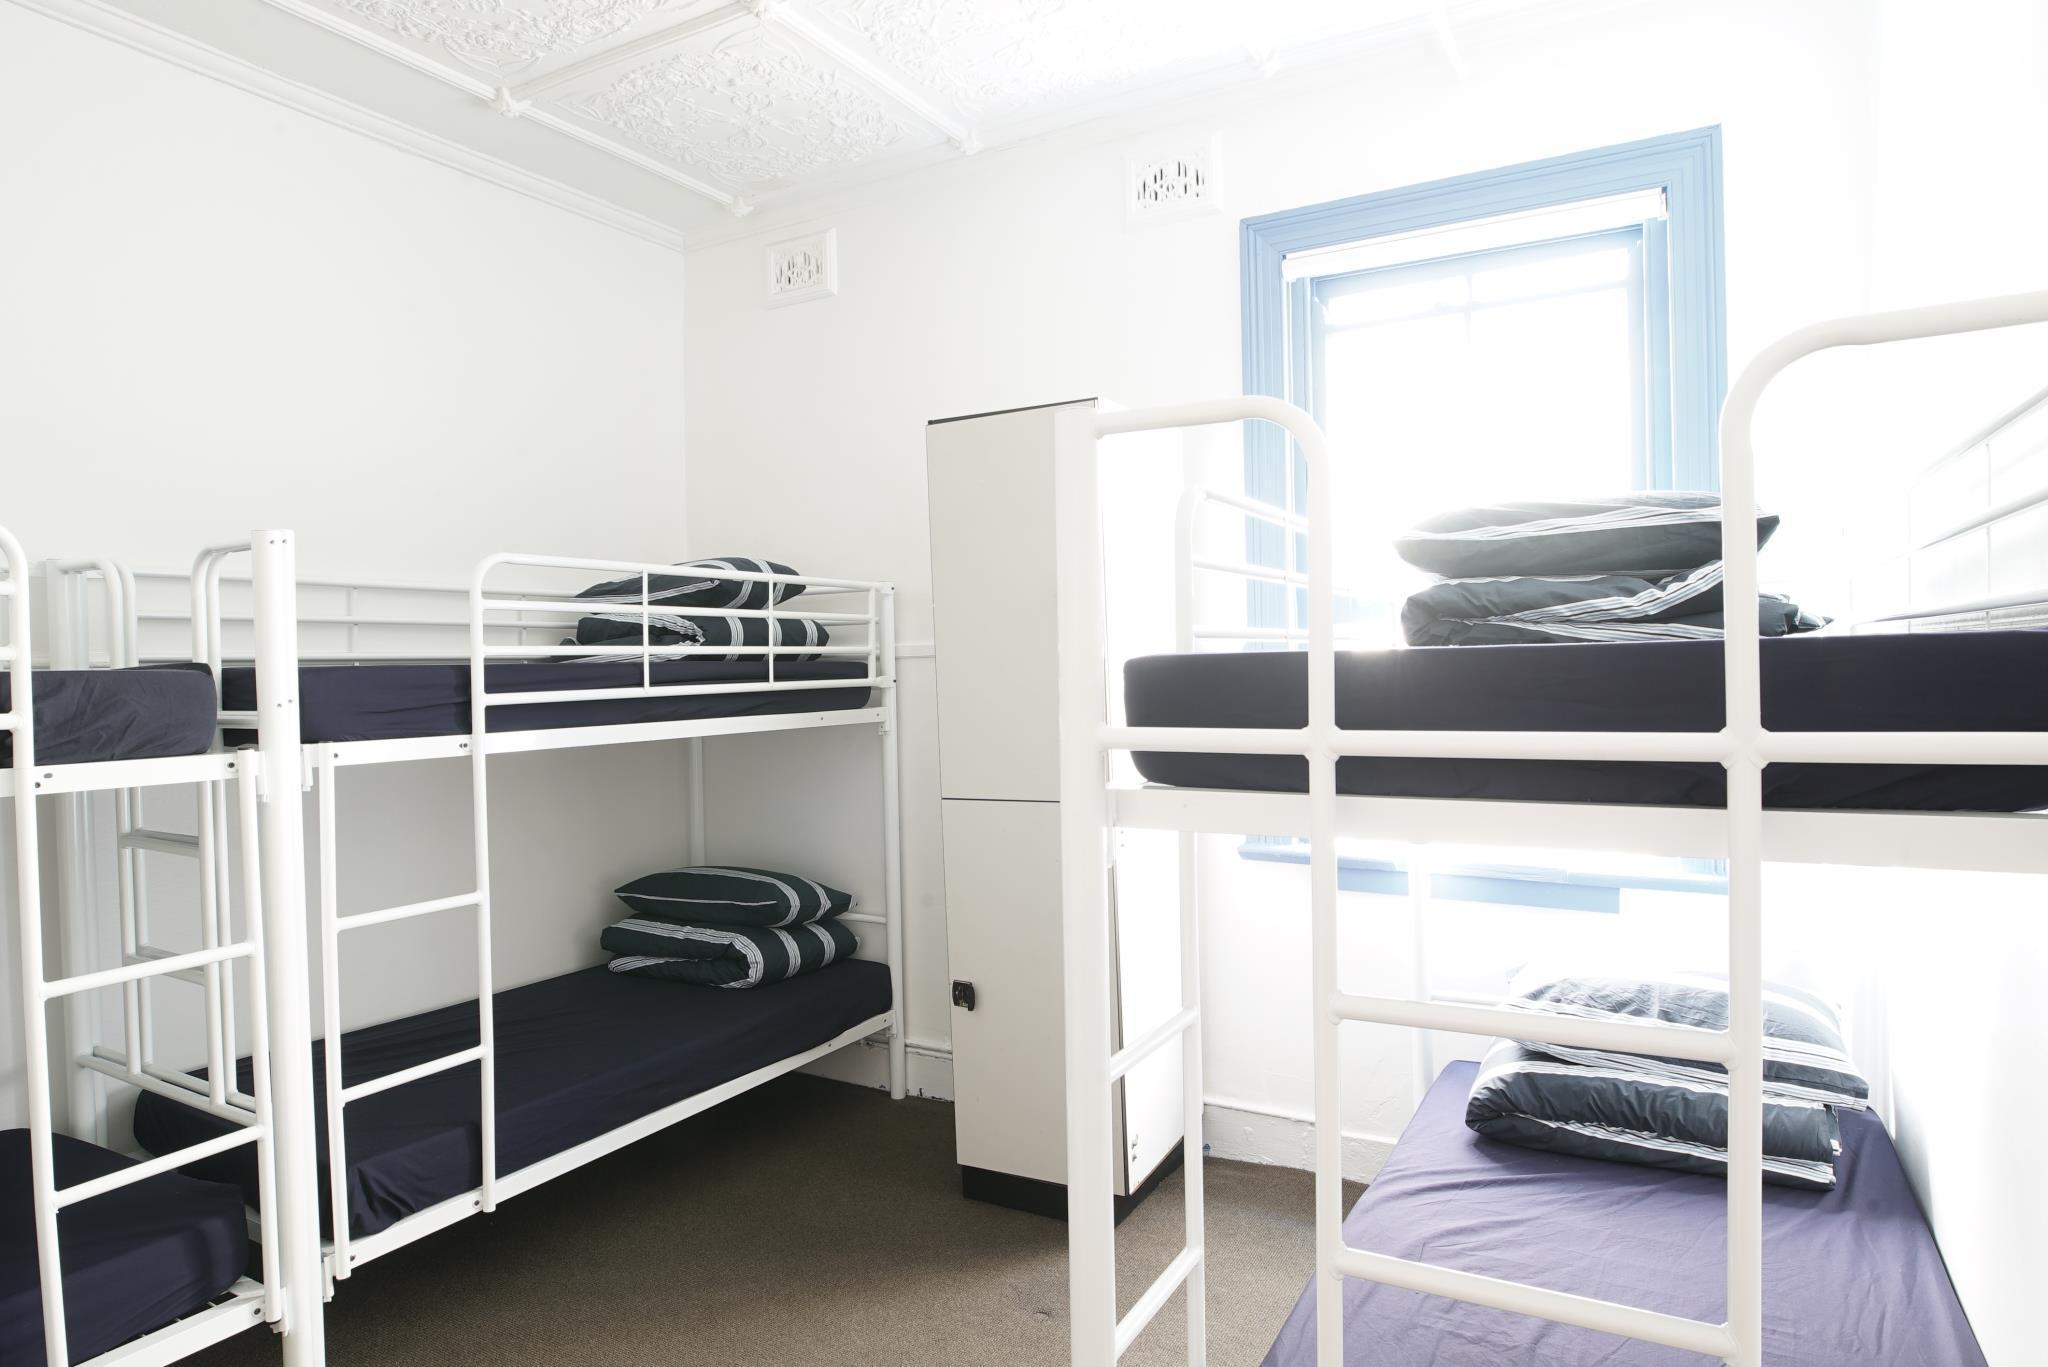 6 Bedded Female Dormitory